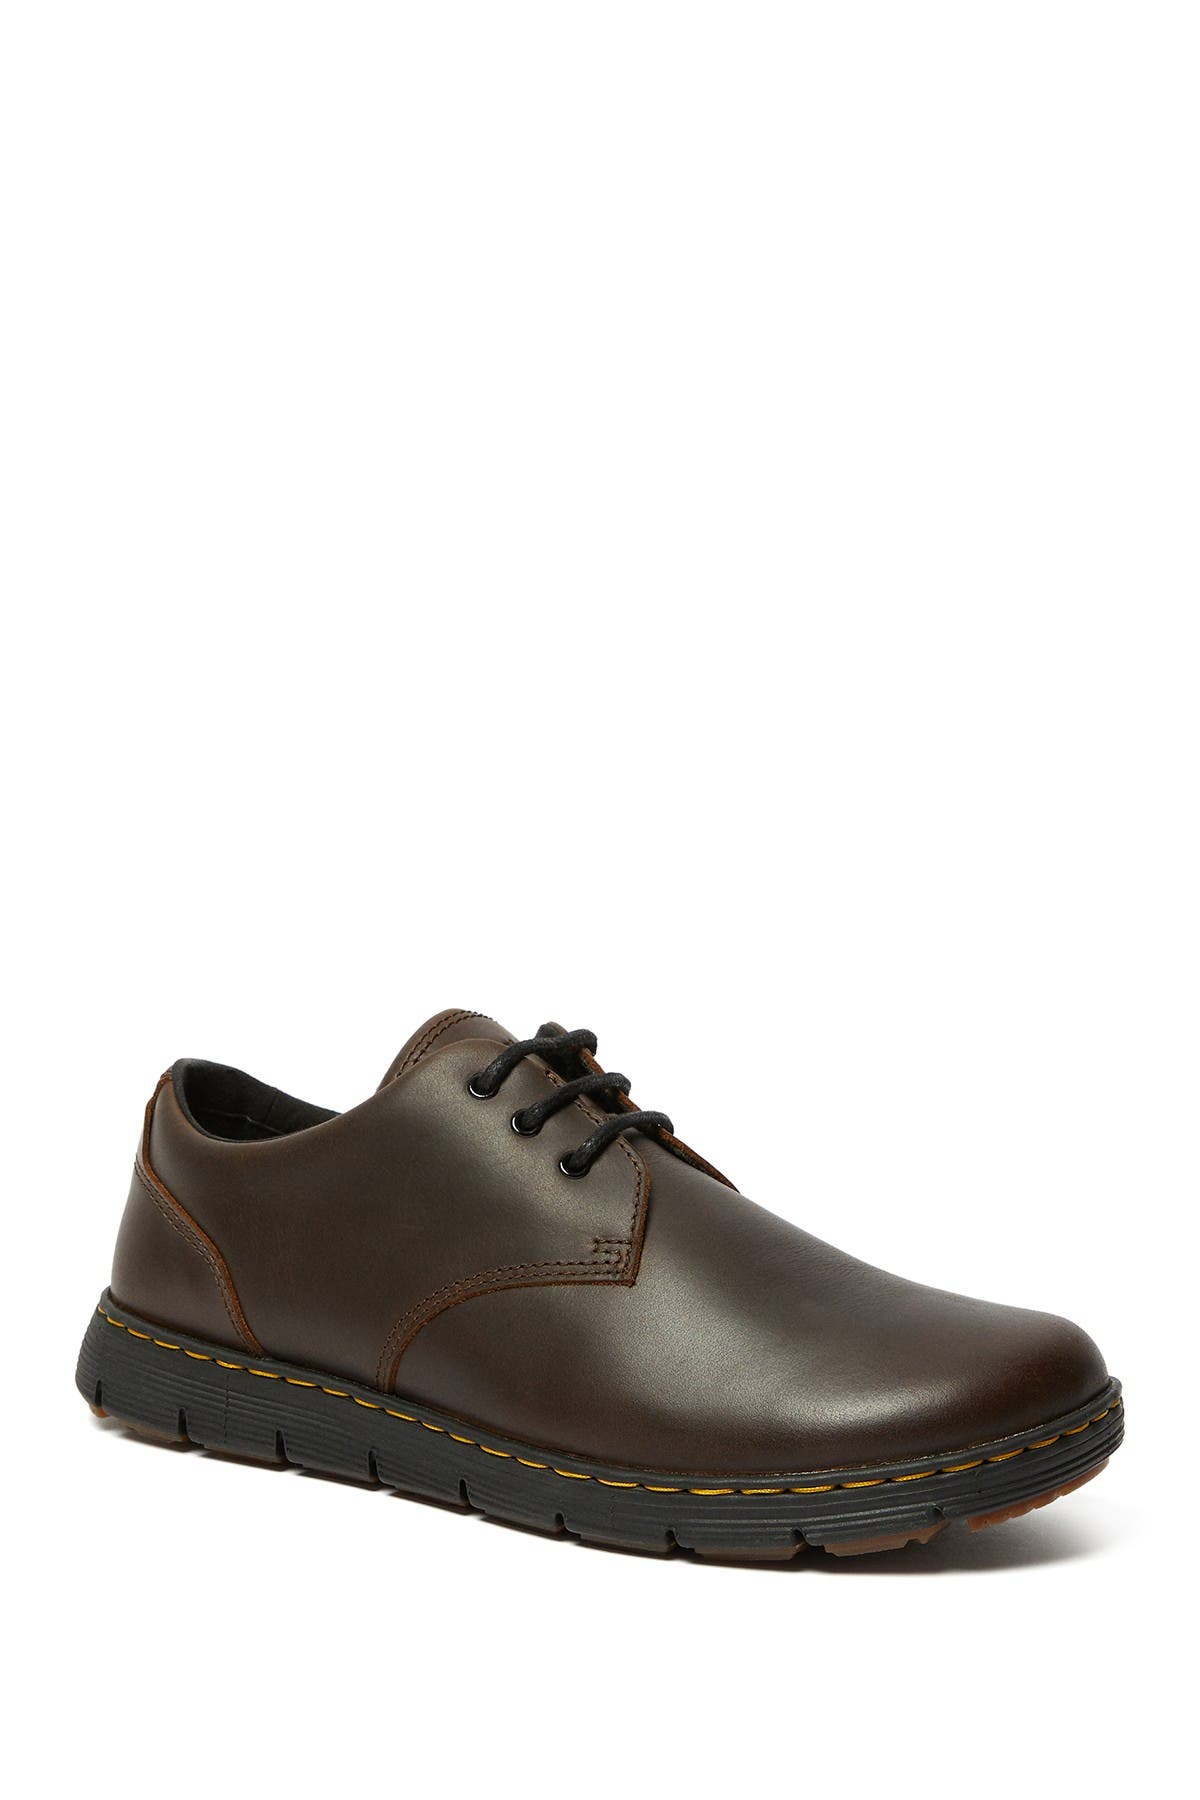 Image of Dr. Martens Rhodes Casual Leather Derby